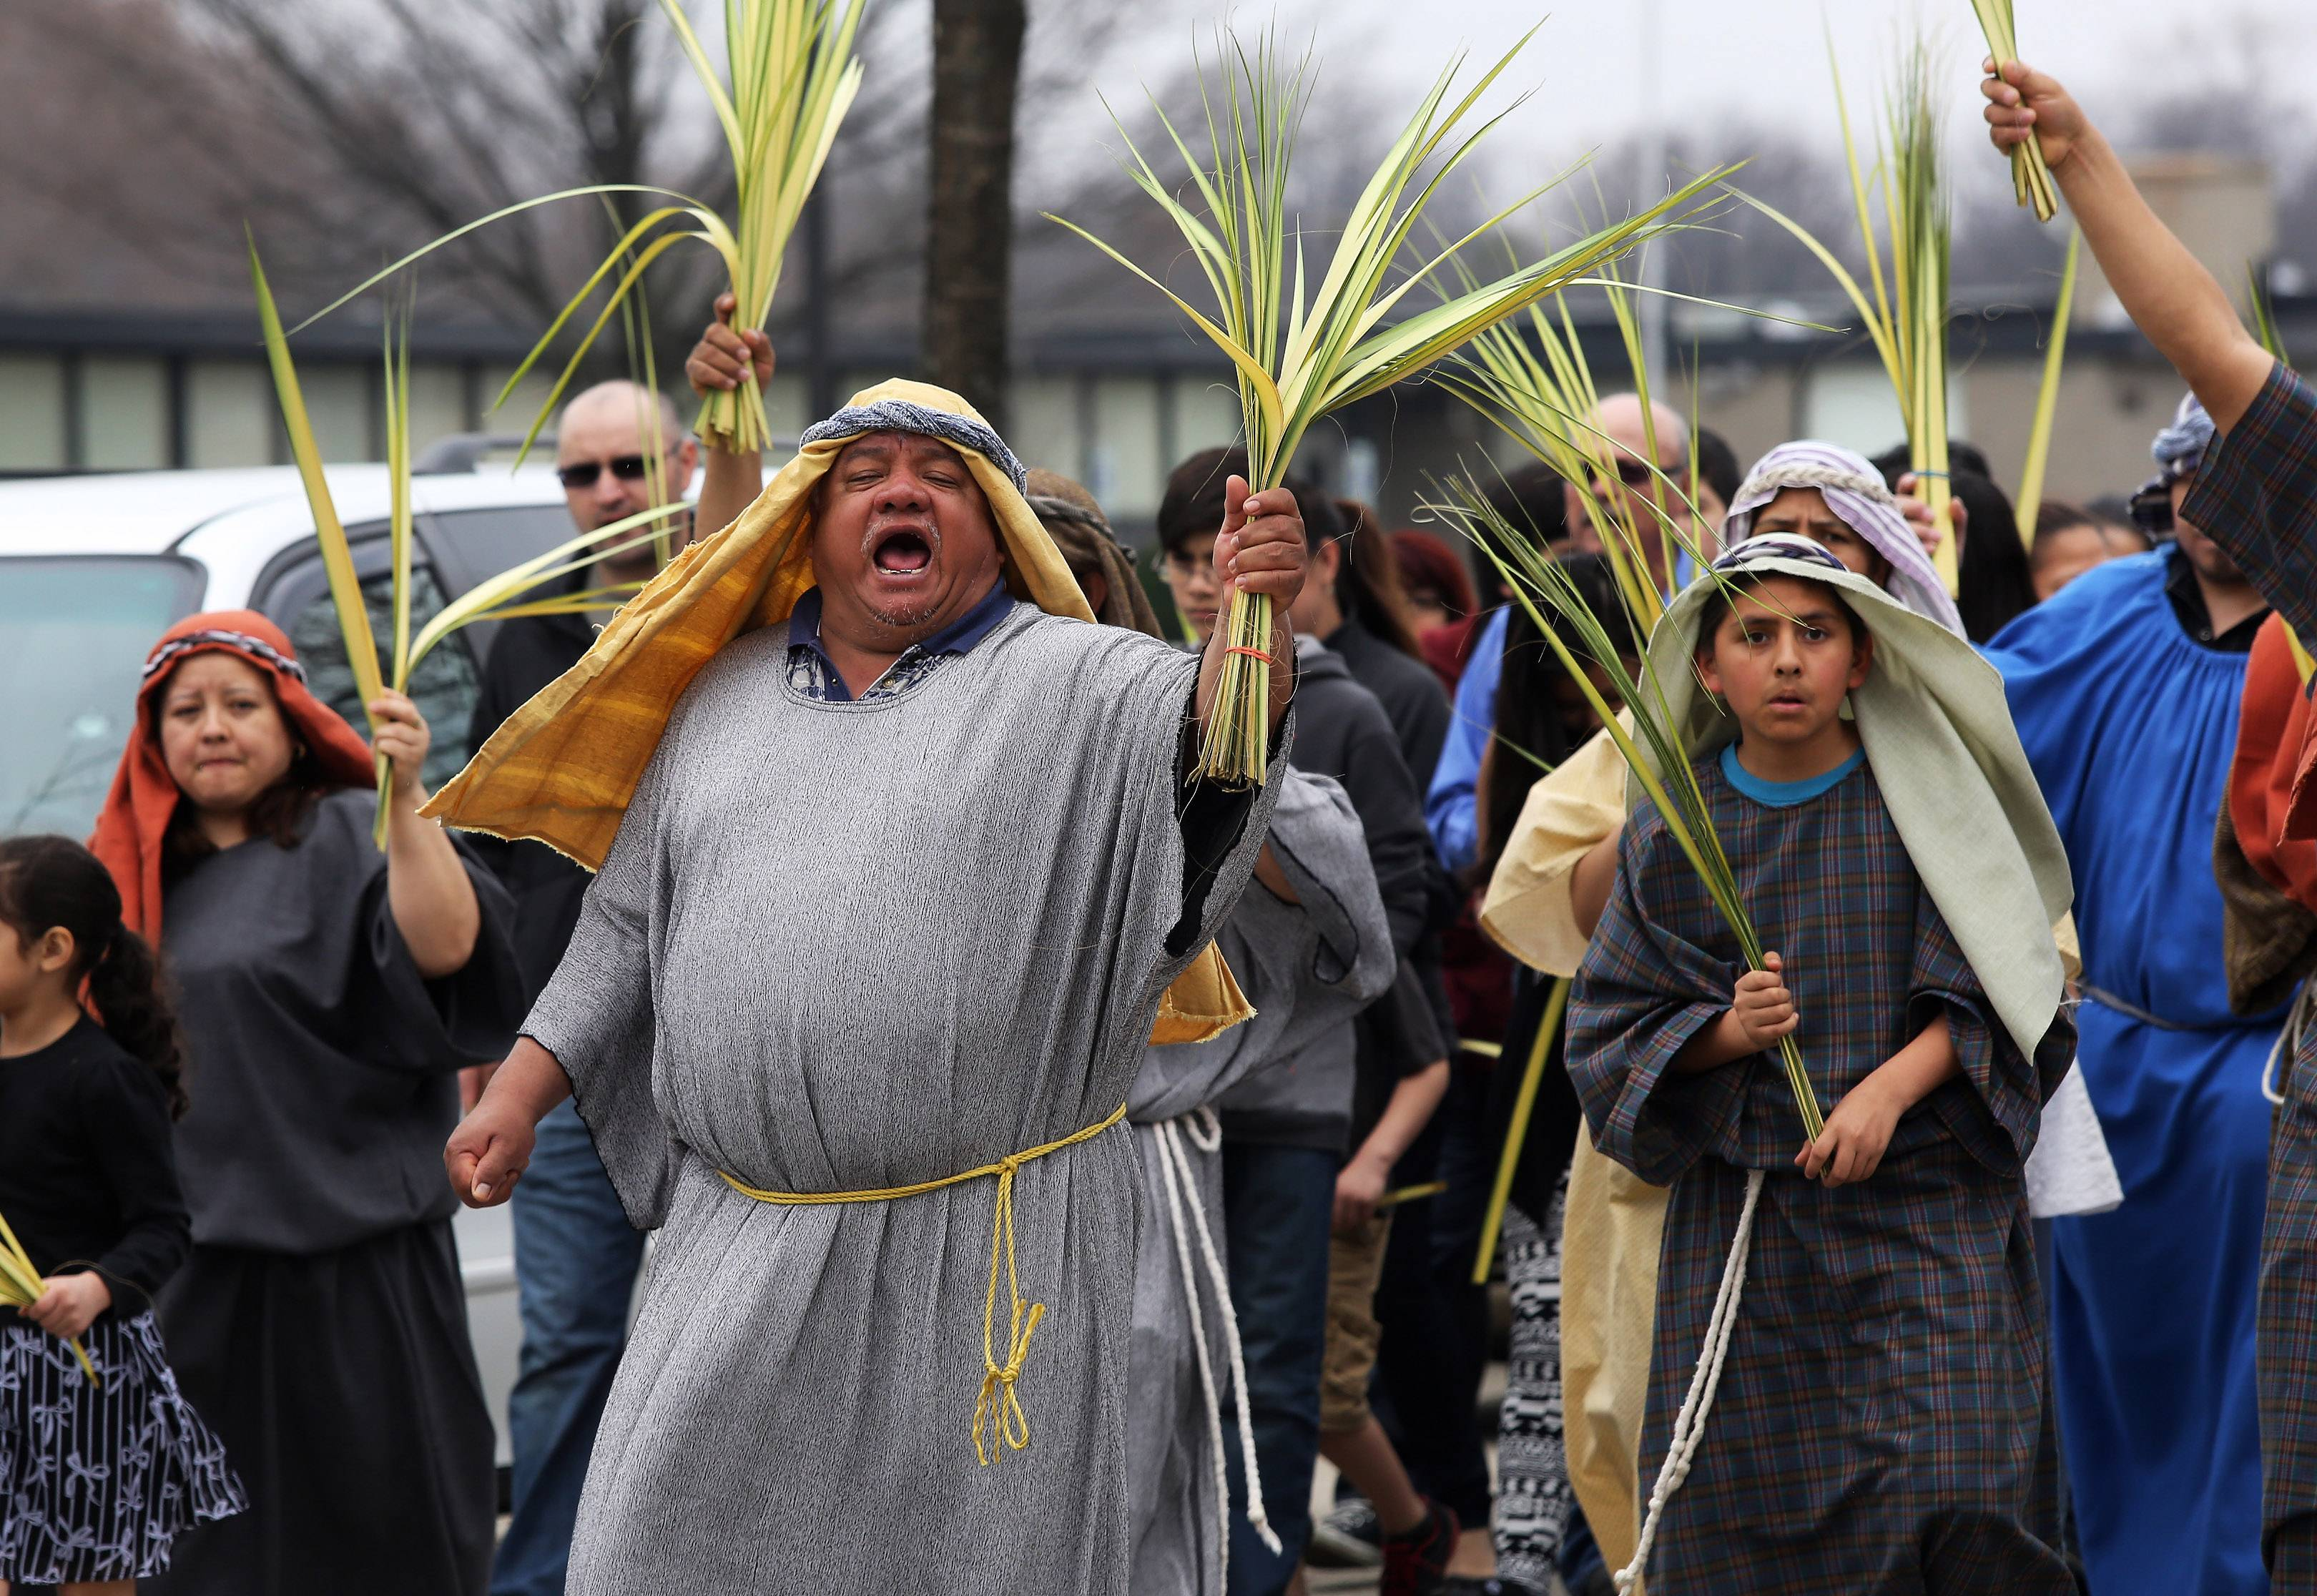 Antonio Vargas of Palatine chants as he walks with parishioners in a Palm Sunday procession from St. Thomas Villanova in Palatine to Mission San Juan Diego in Arlington Heights.